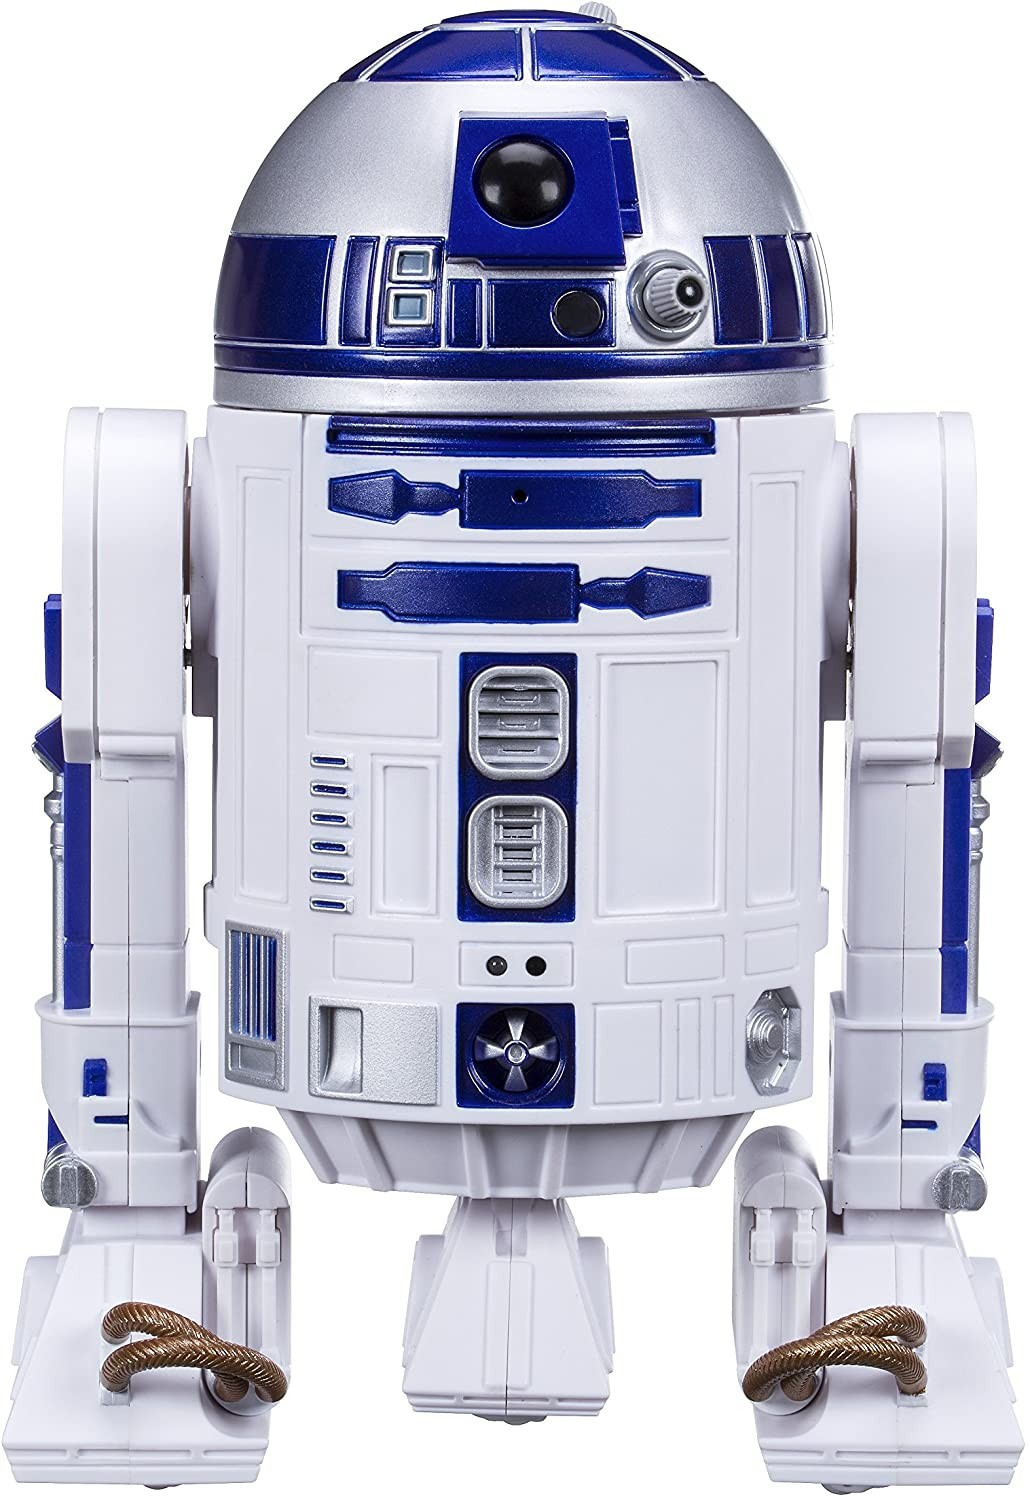 Star Wars SW Movie E7 Robot Inteligente R2D2, Multicolor (Hasbro B7493EU0)